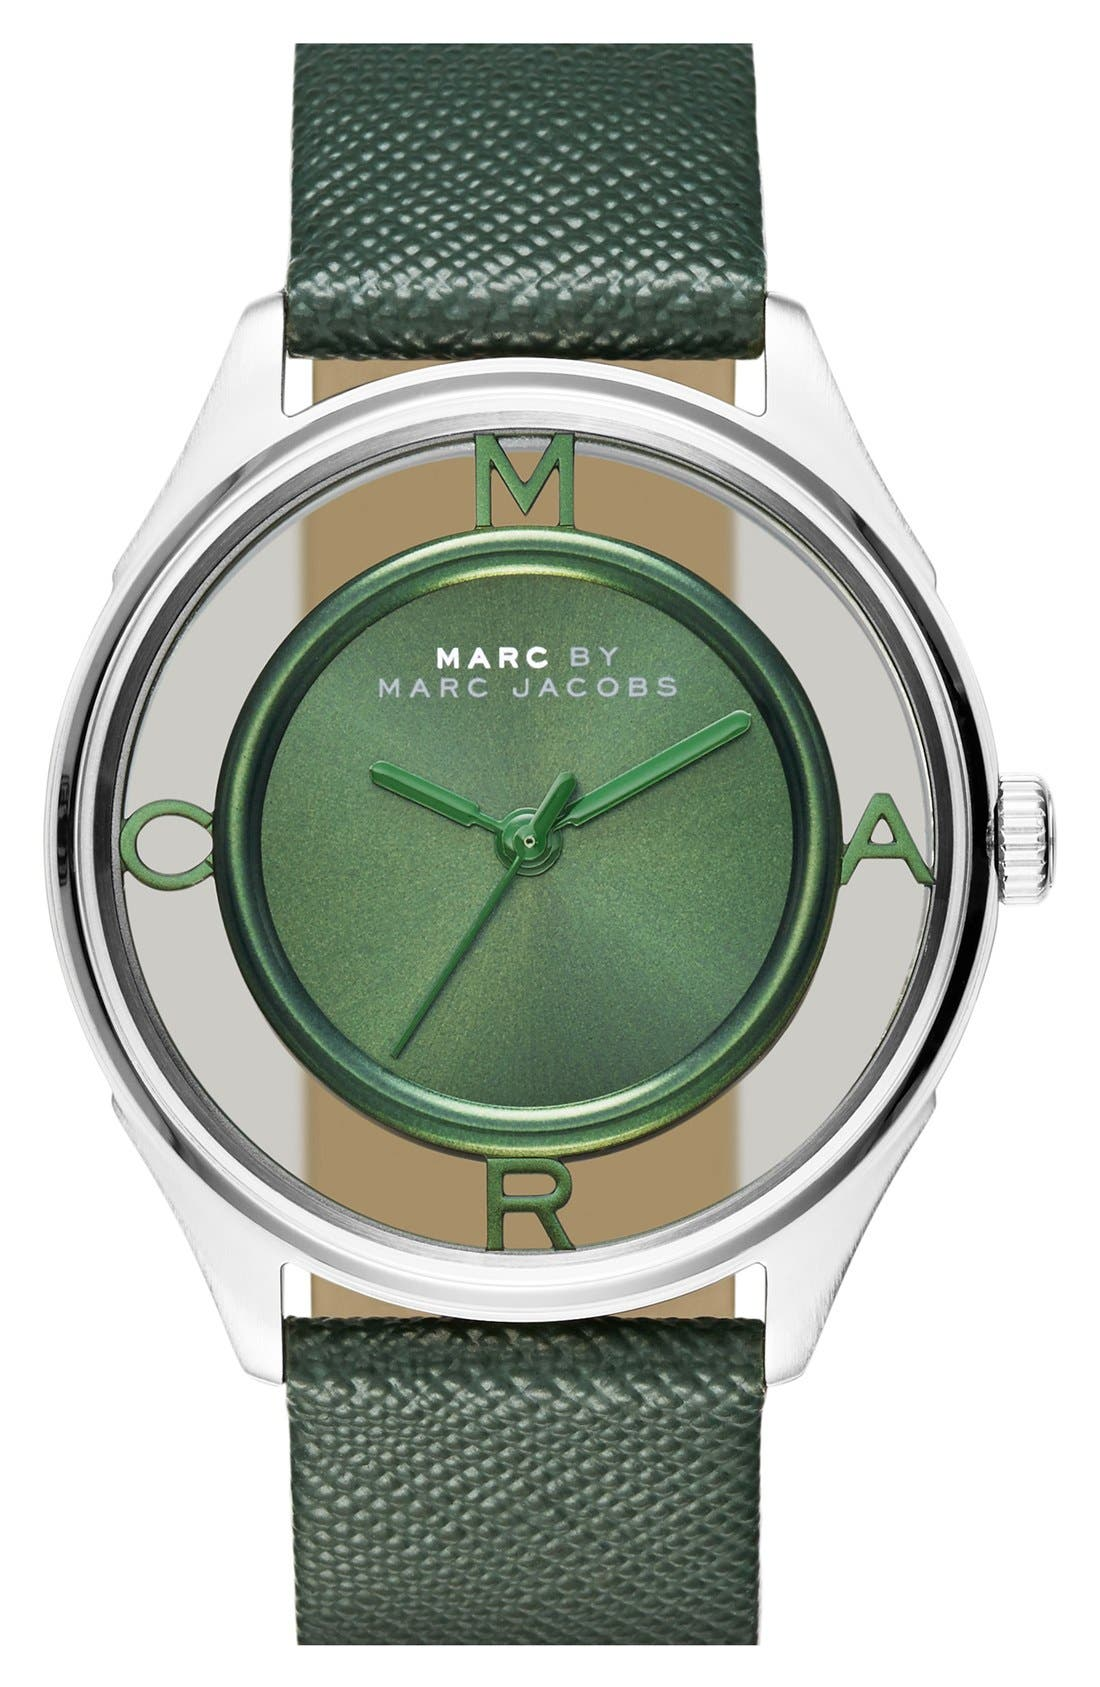 Main Image - MARC JACOBS 'Tether' Skeleton Leather Strap Watch, 36mm